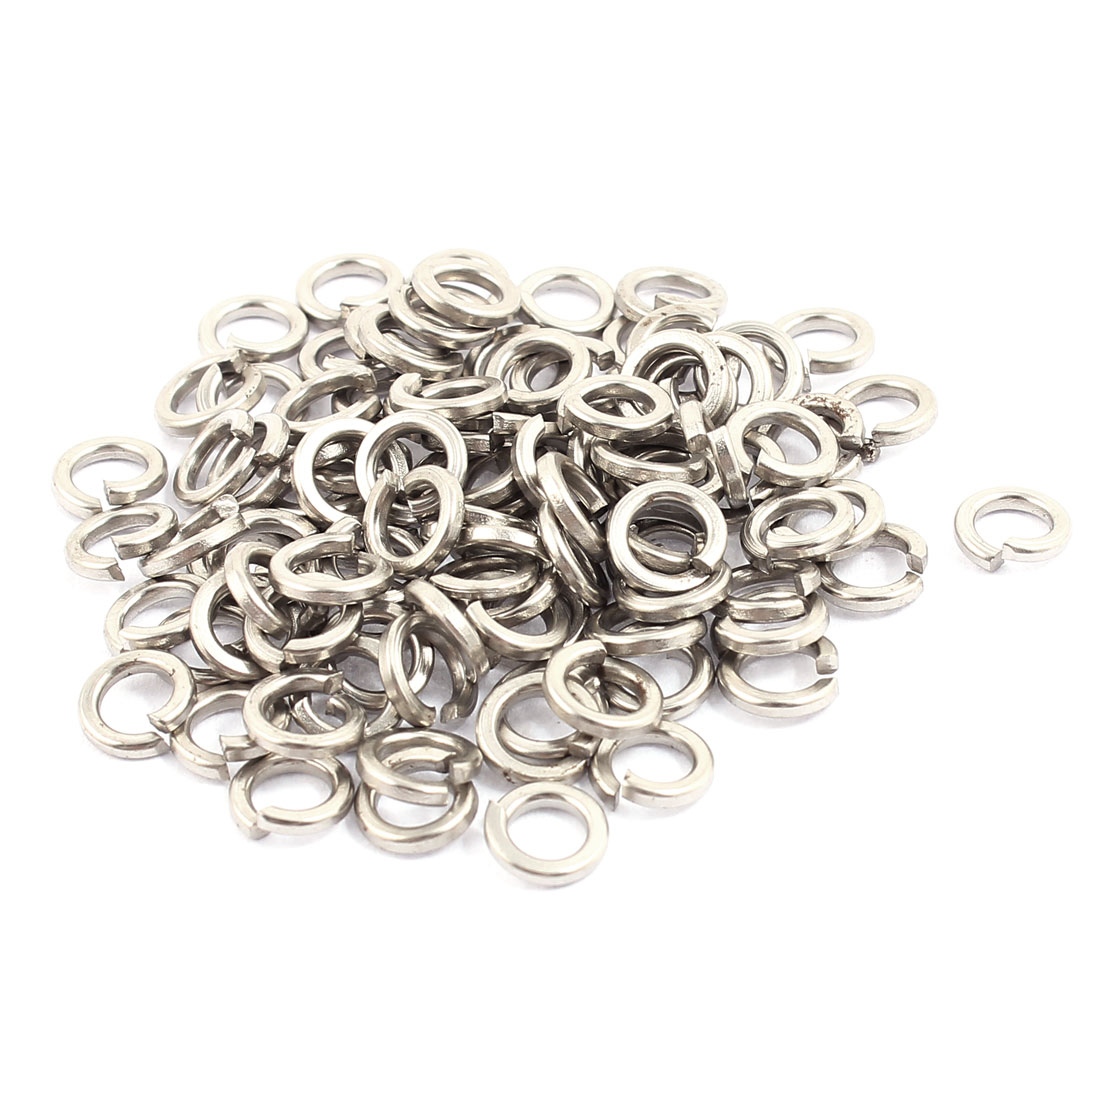 100pcs 4x6mm 304 Stainless Steel Rectangular Section Split Lock Spring Washers